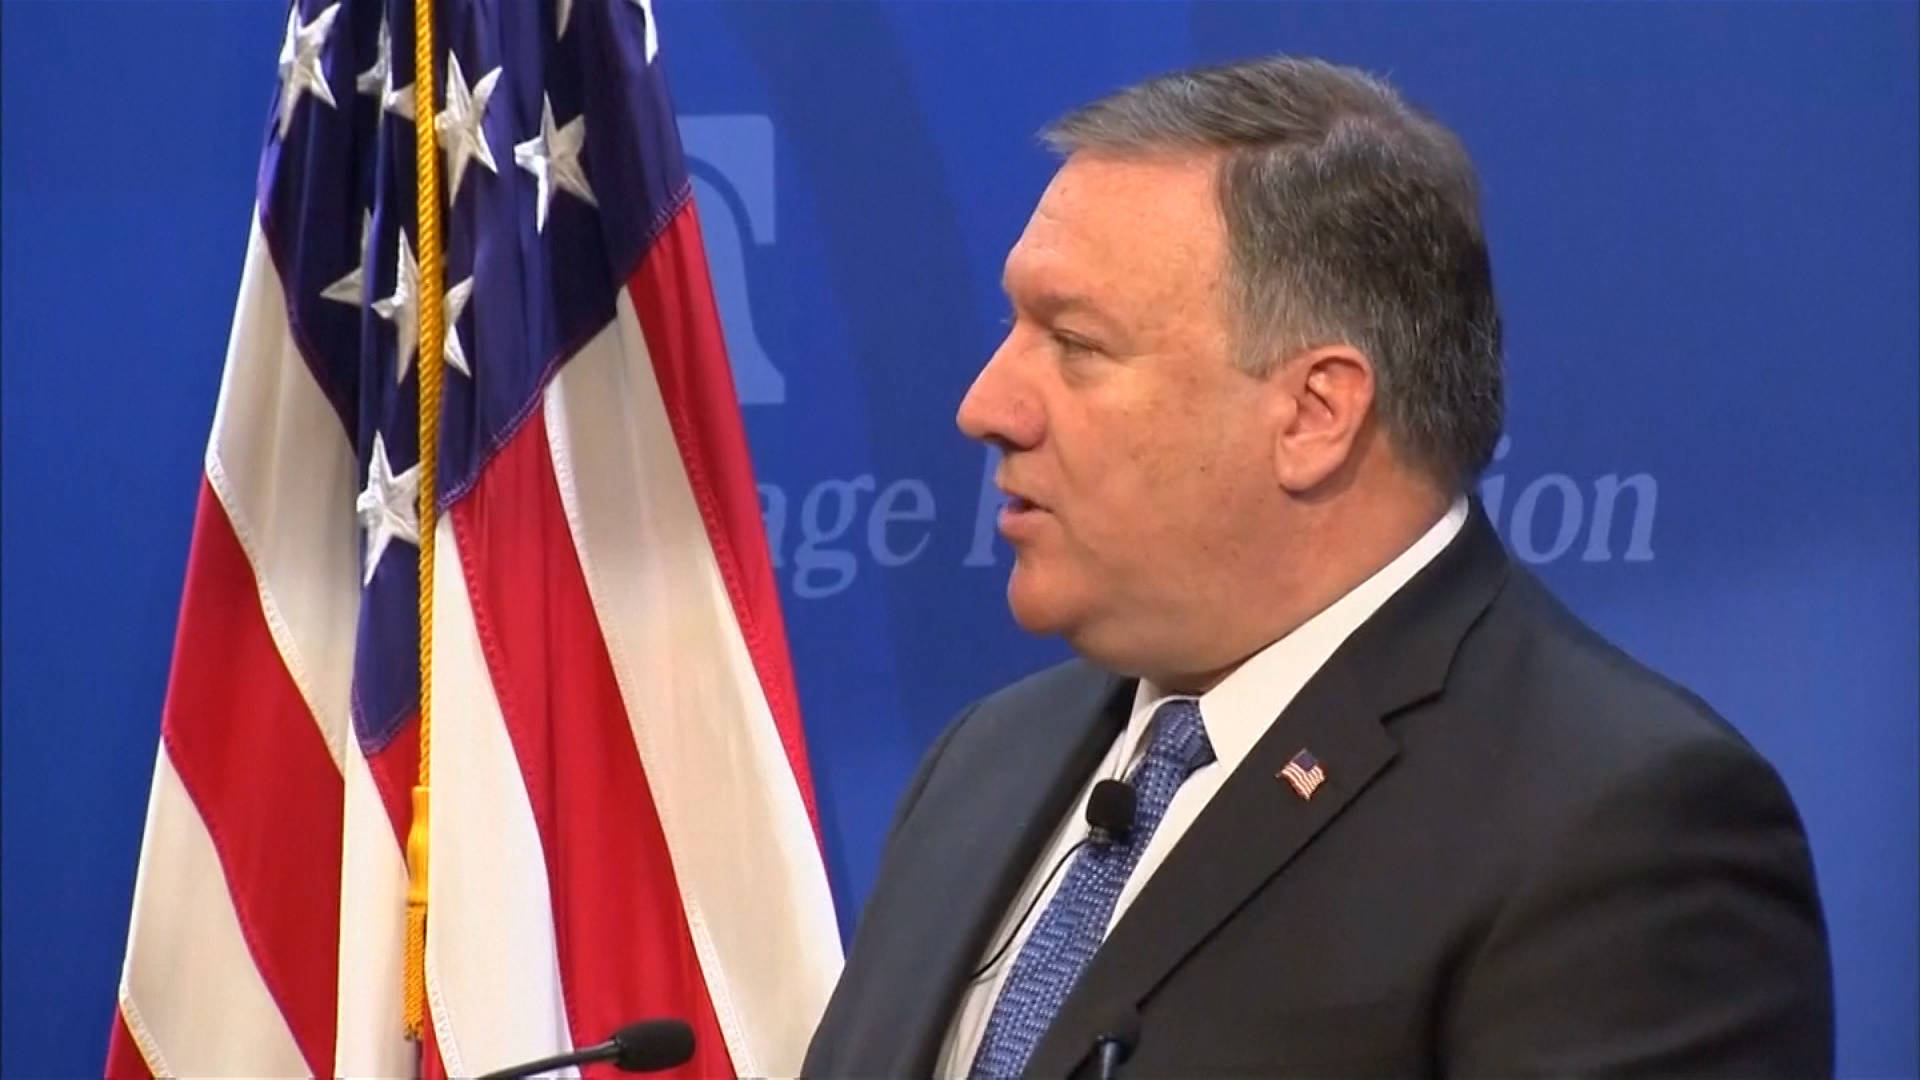 Pompeo Threatens Iran & Lays Out Unattainable Nuclear Requirements, Speeding U.S. March Toward War